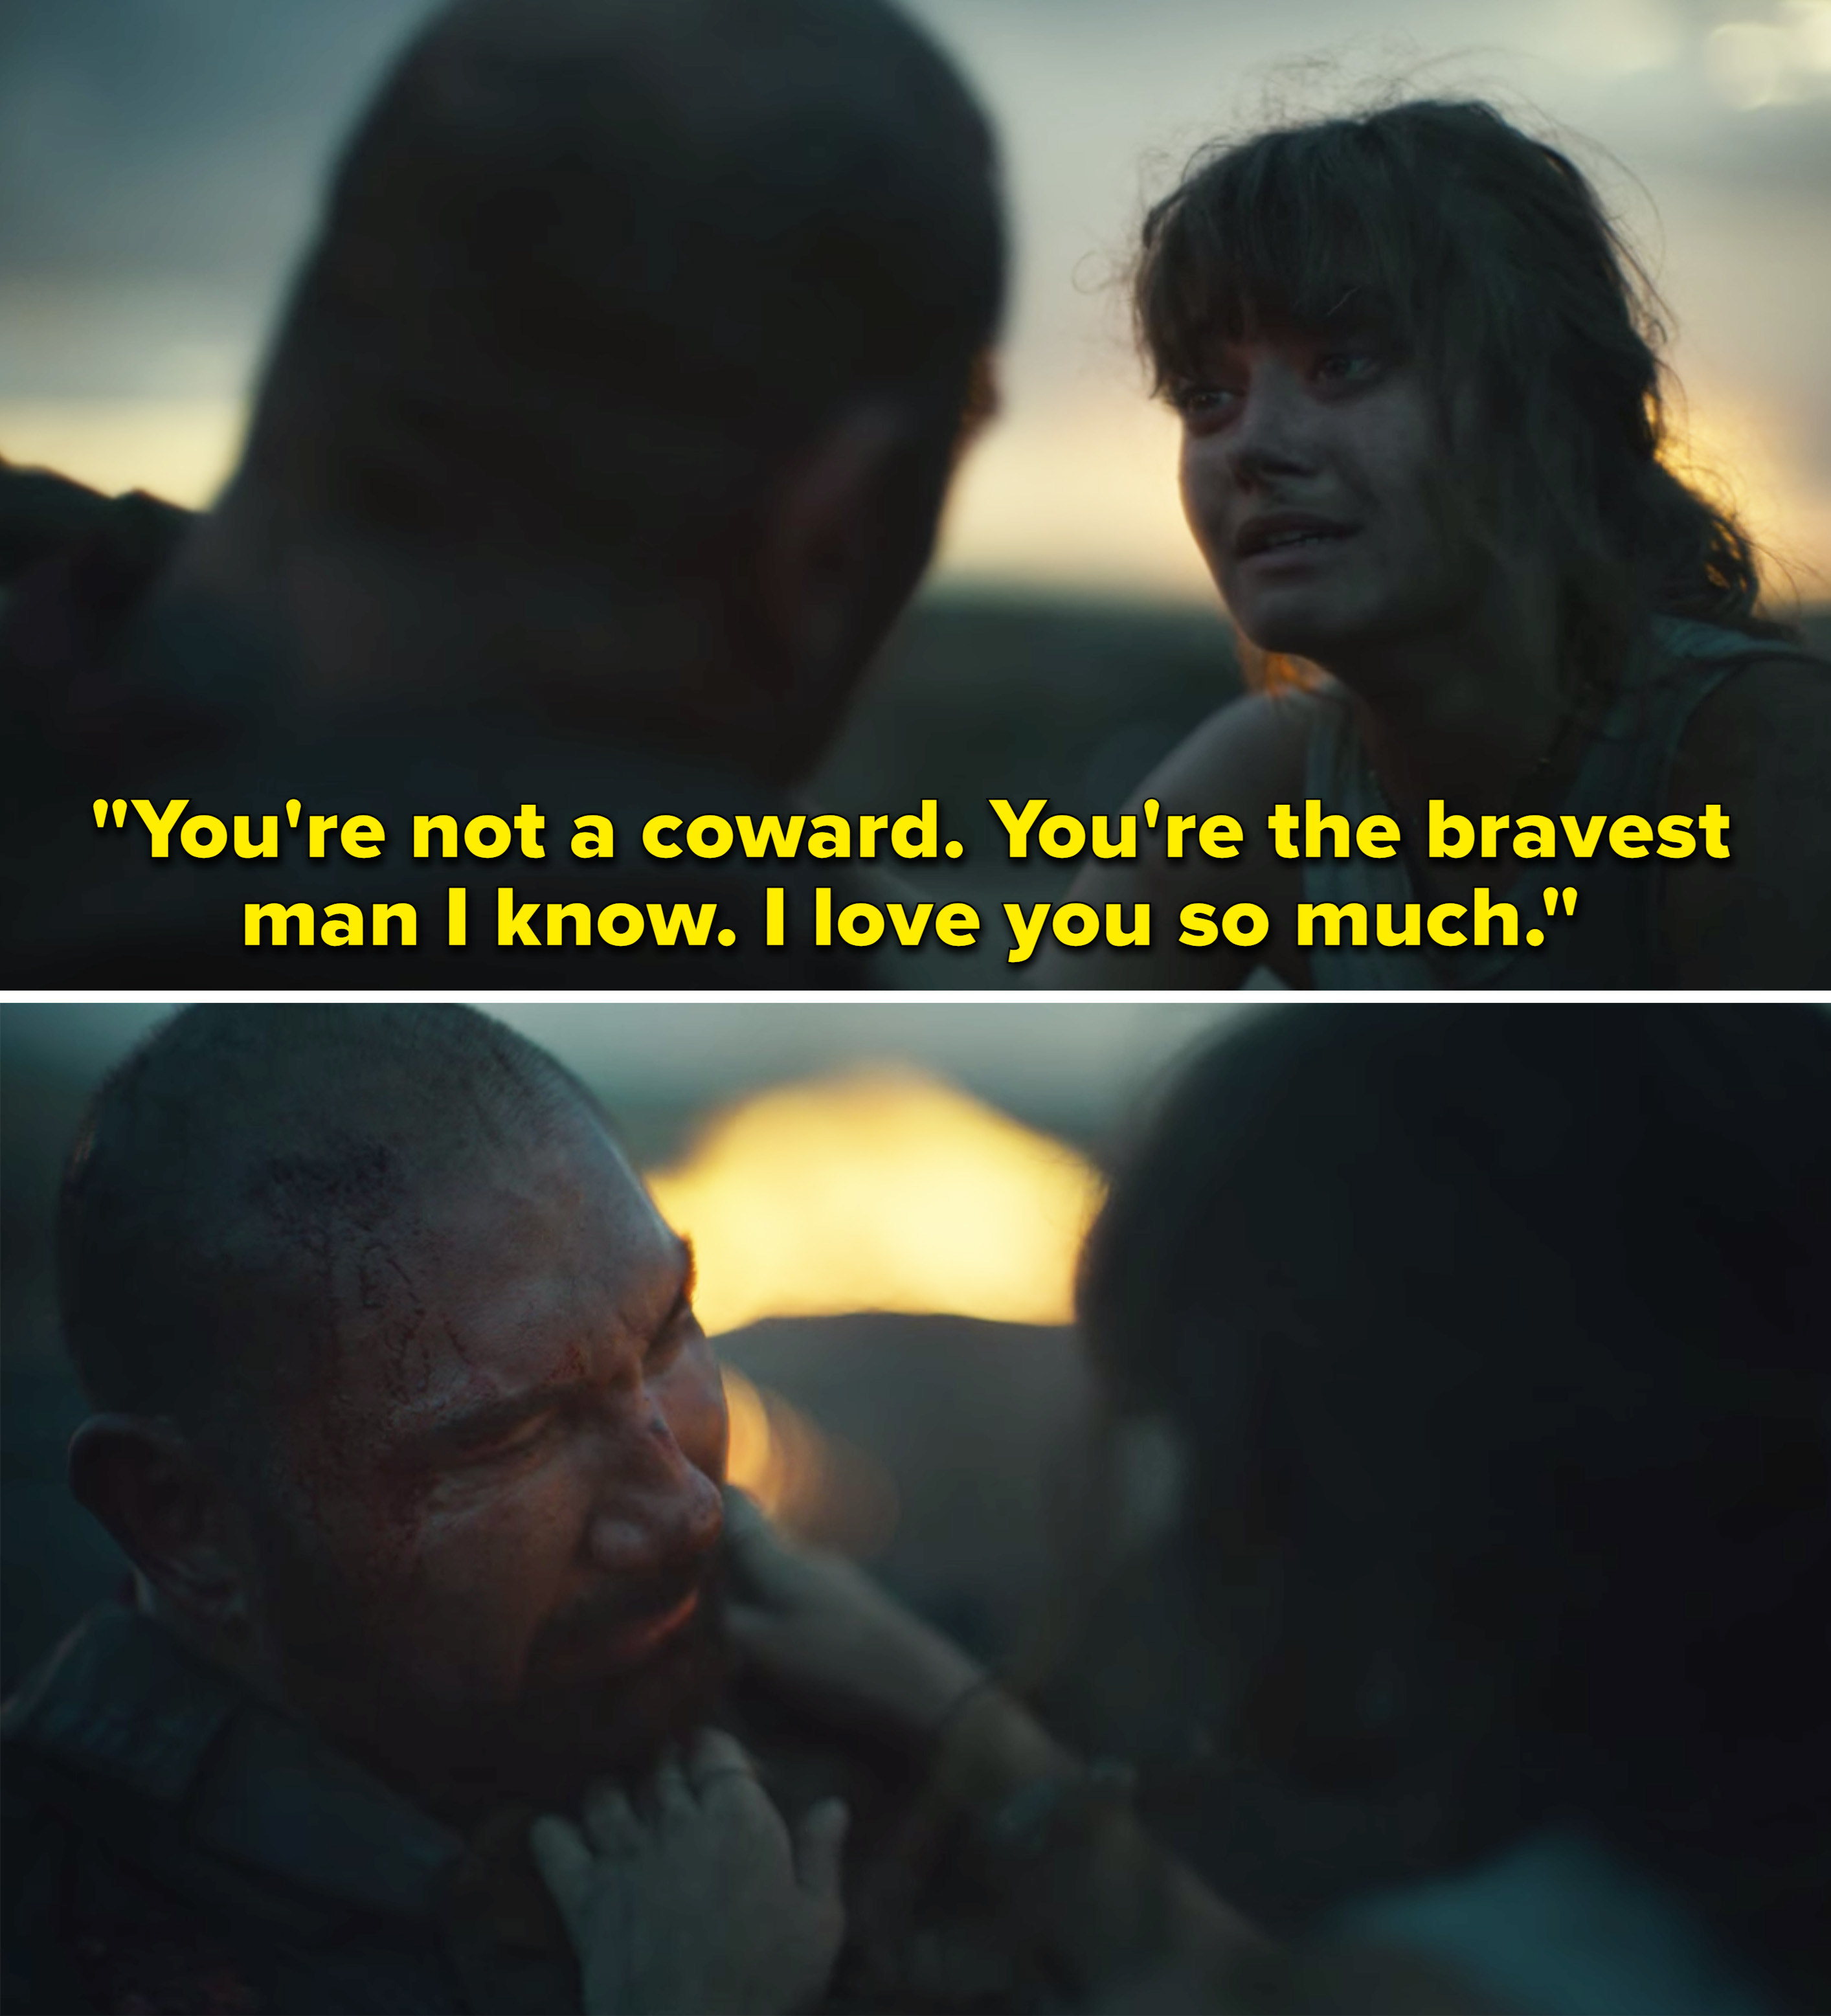 """Kate telling Scott, """"You're not a coward. You're the bravest man I know. I love you so much"""""""